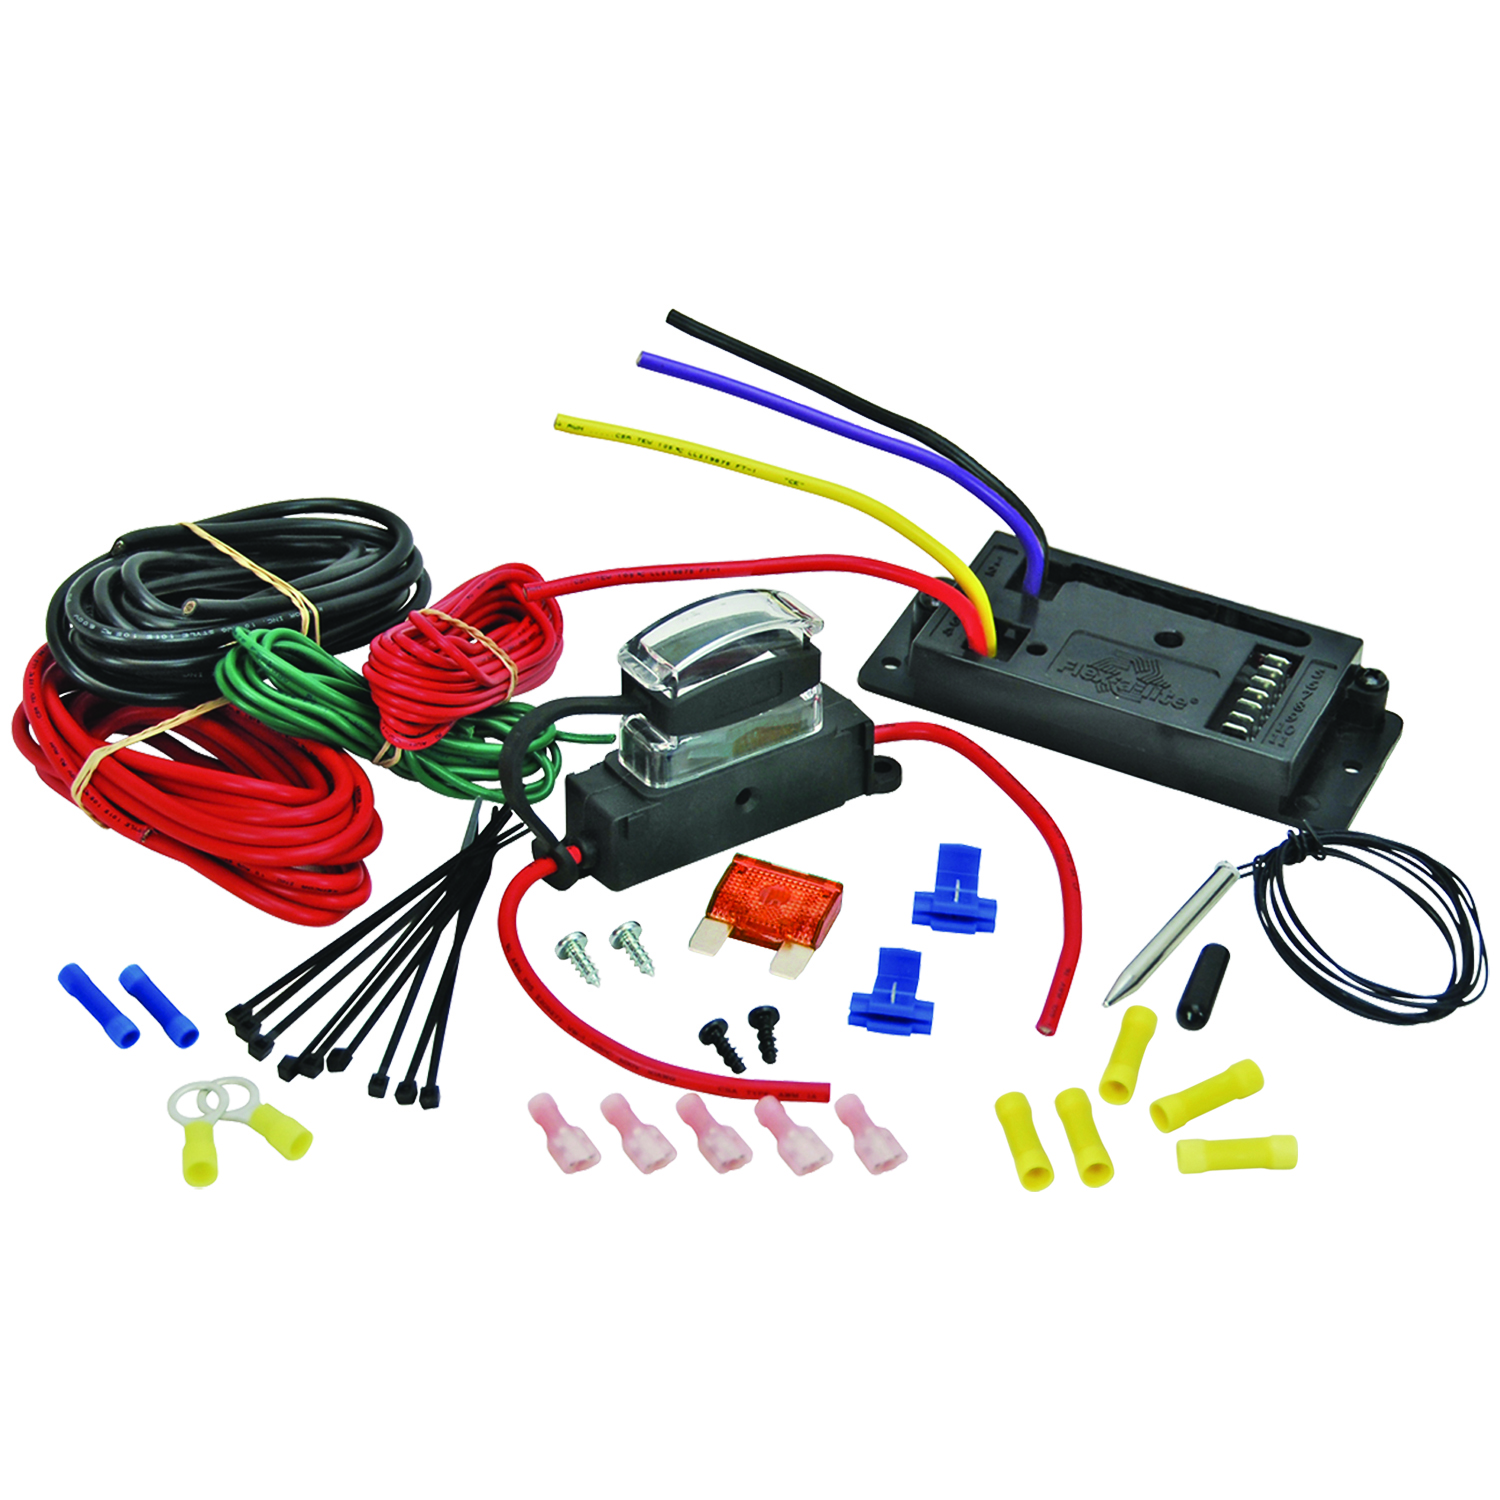 flex a lite dual fan controller wiring diagram discovery 2 bcu 31165 variable speed control module autoplicity